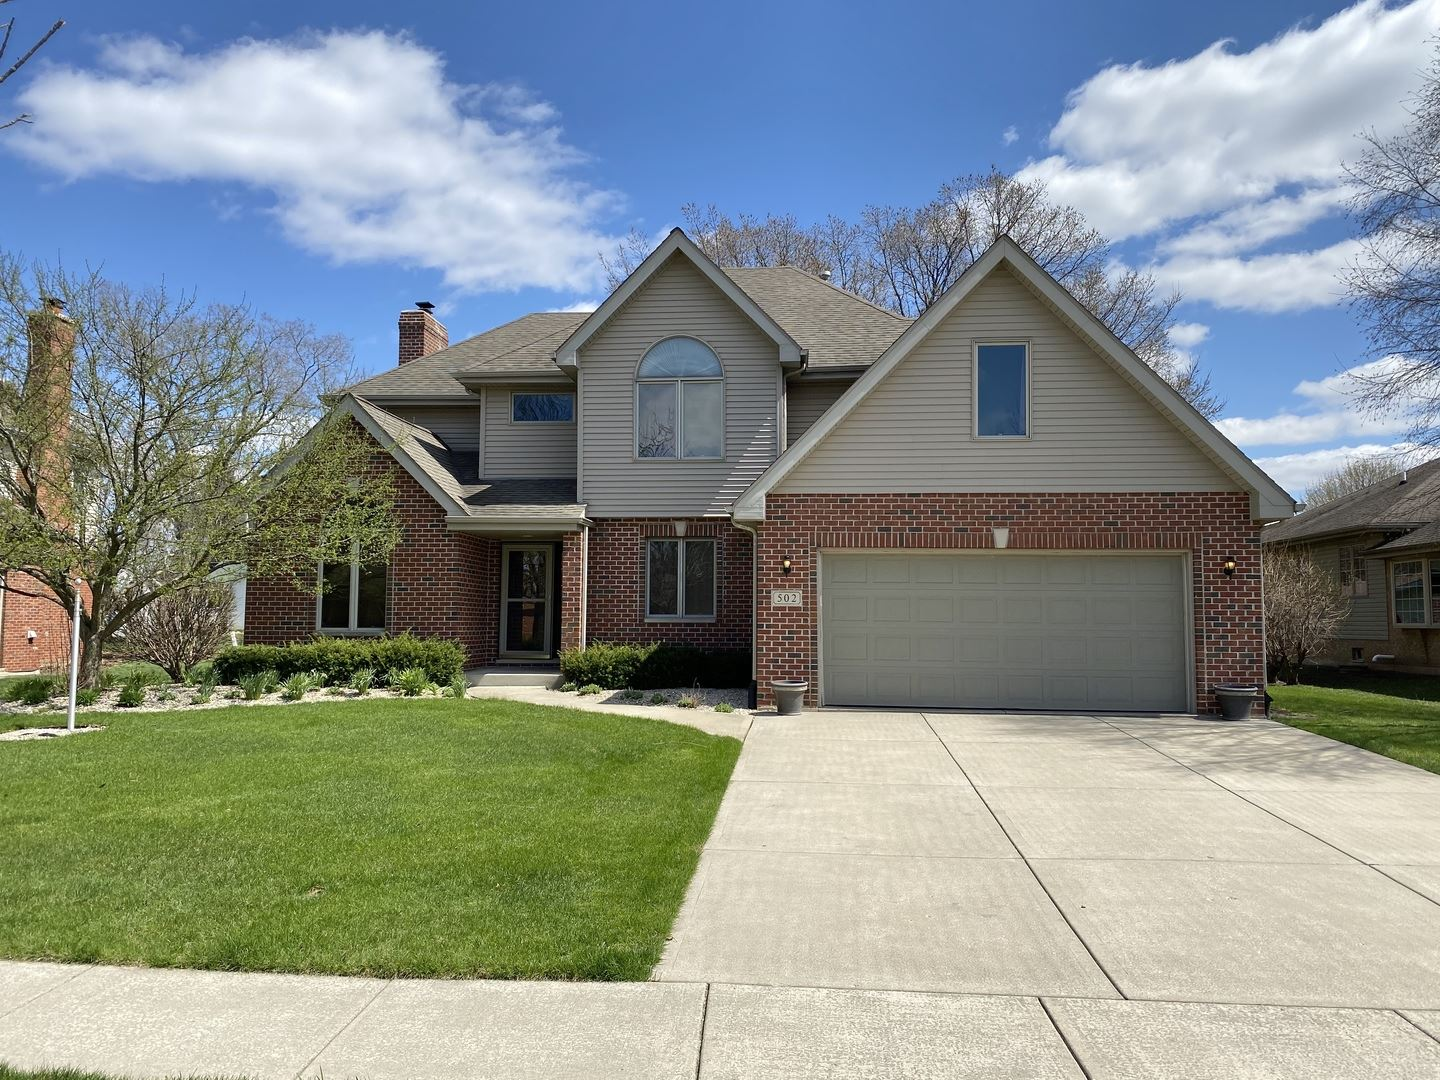 502 Wisconsin Road, New Lenox, IL 60451 - MLS#: 10688047